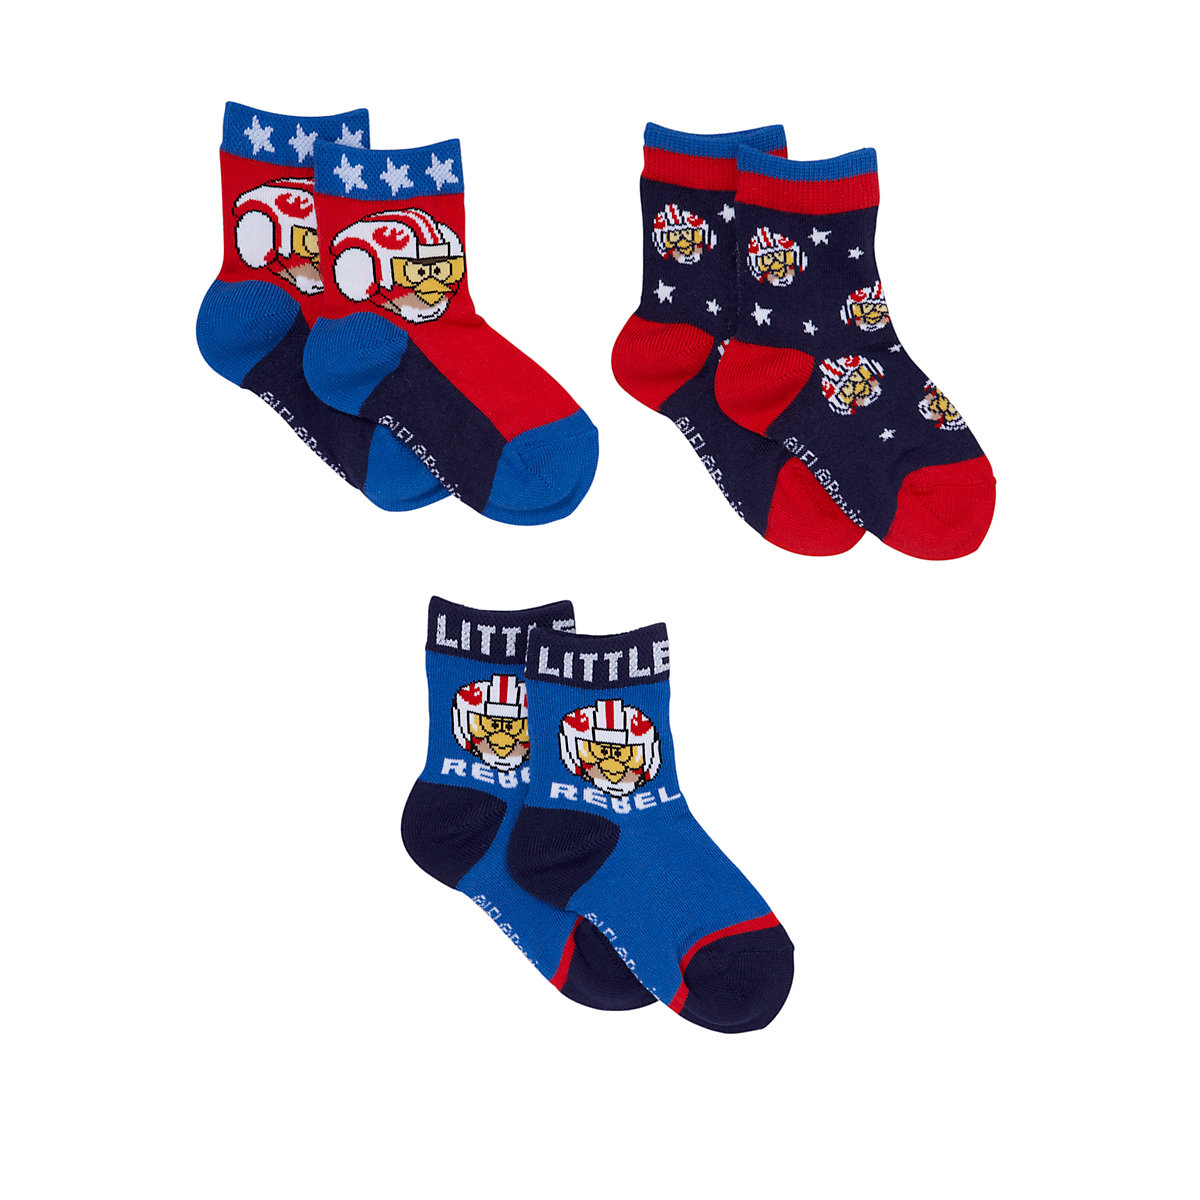 Mothercare Angry Birds Star Wars Socks - 3 Pack - Angry Birds Gifts